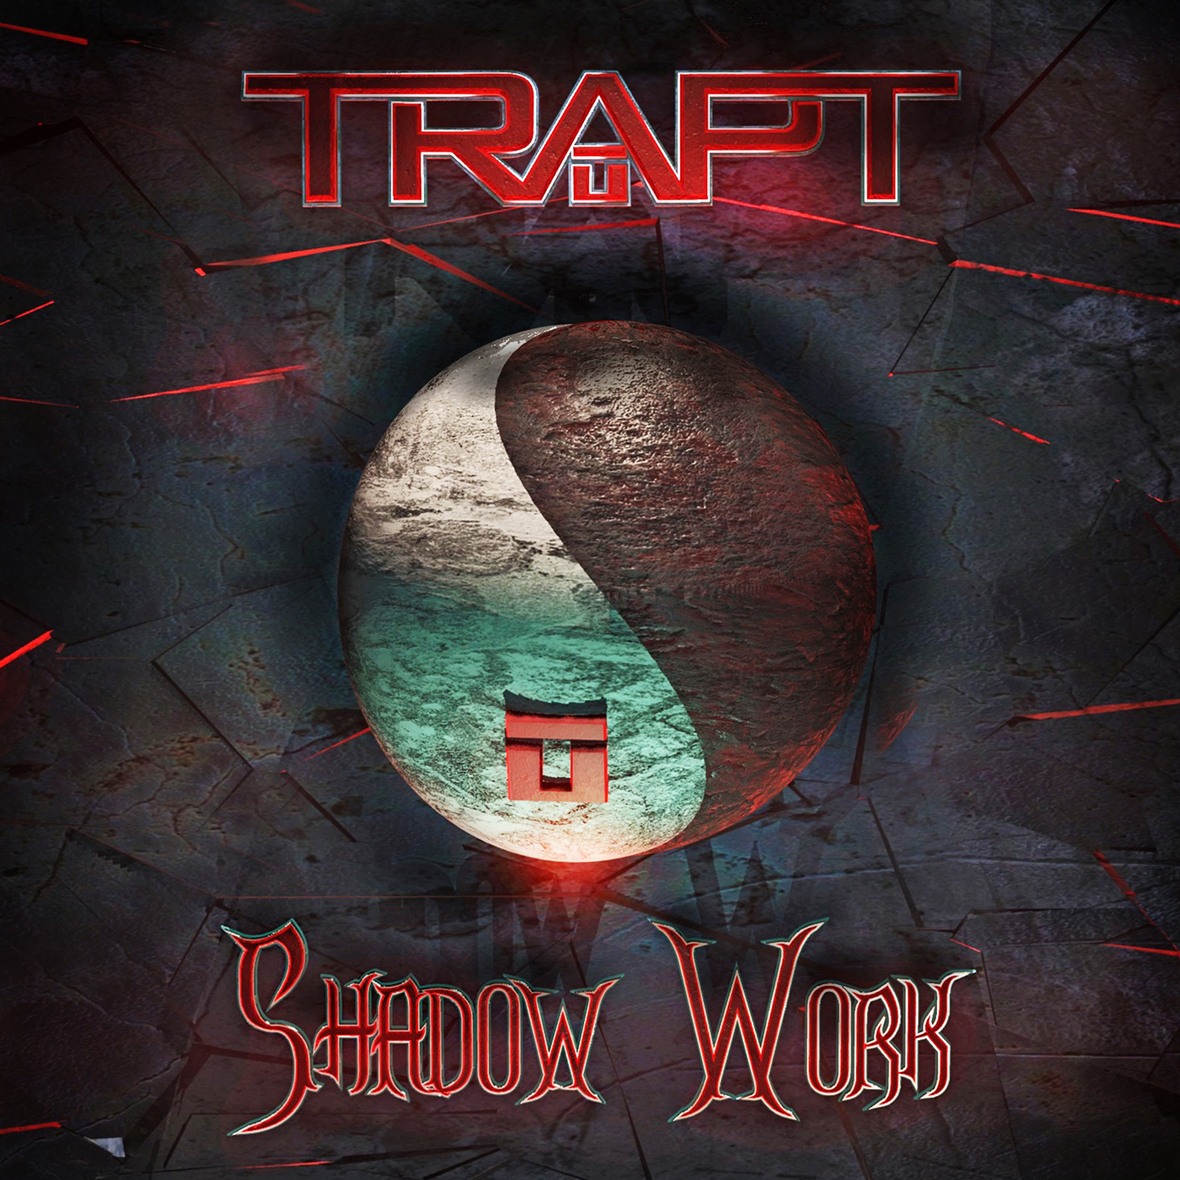 TRAPT's Latest Album Shadow Work Available Now